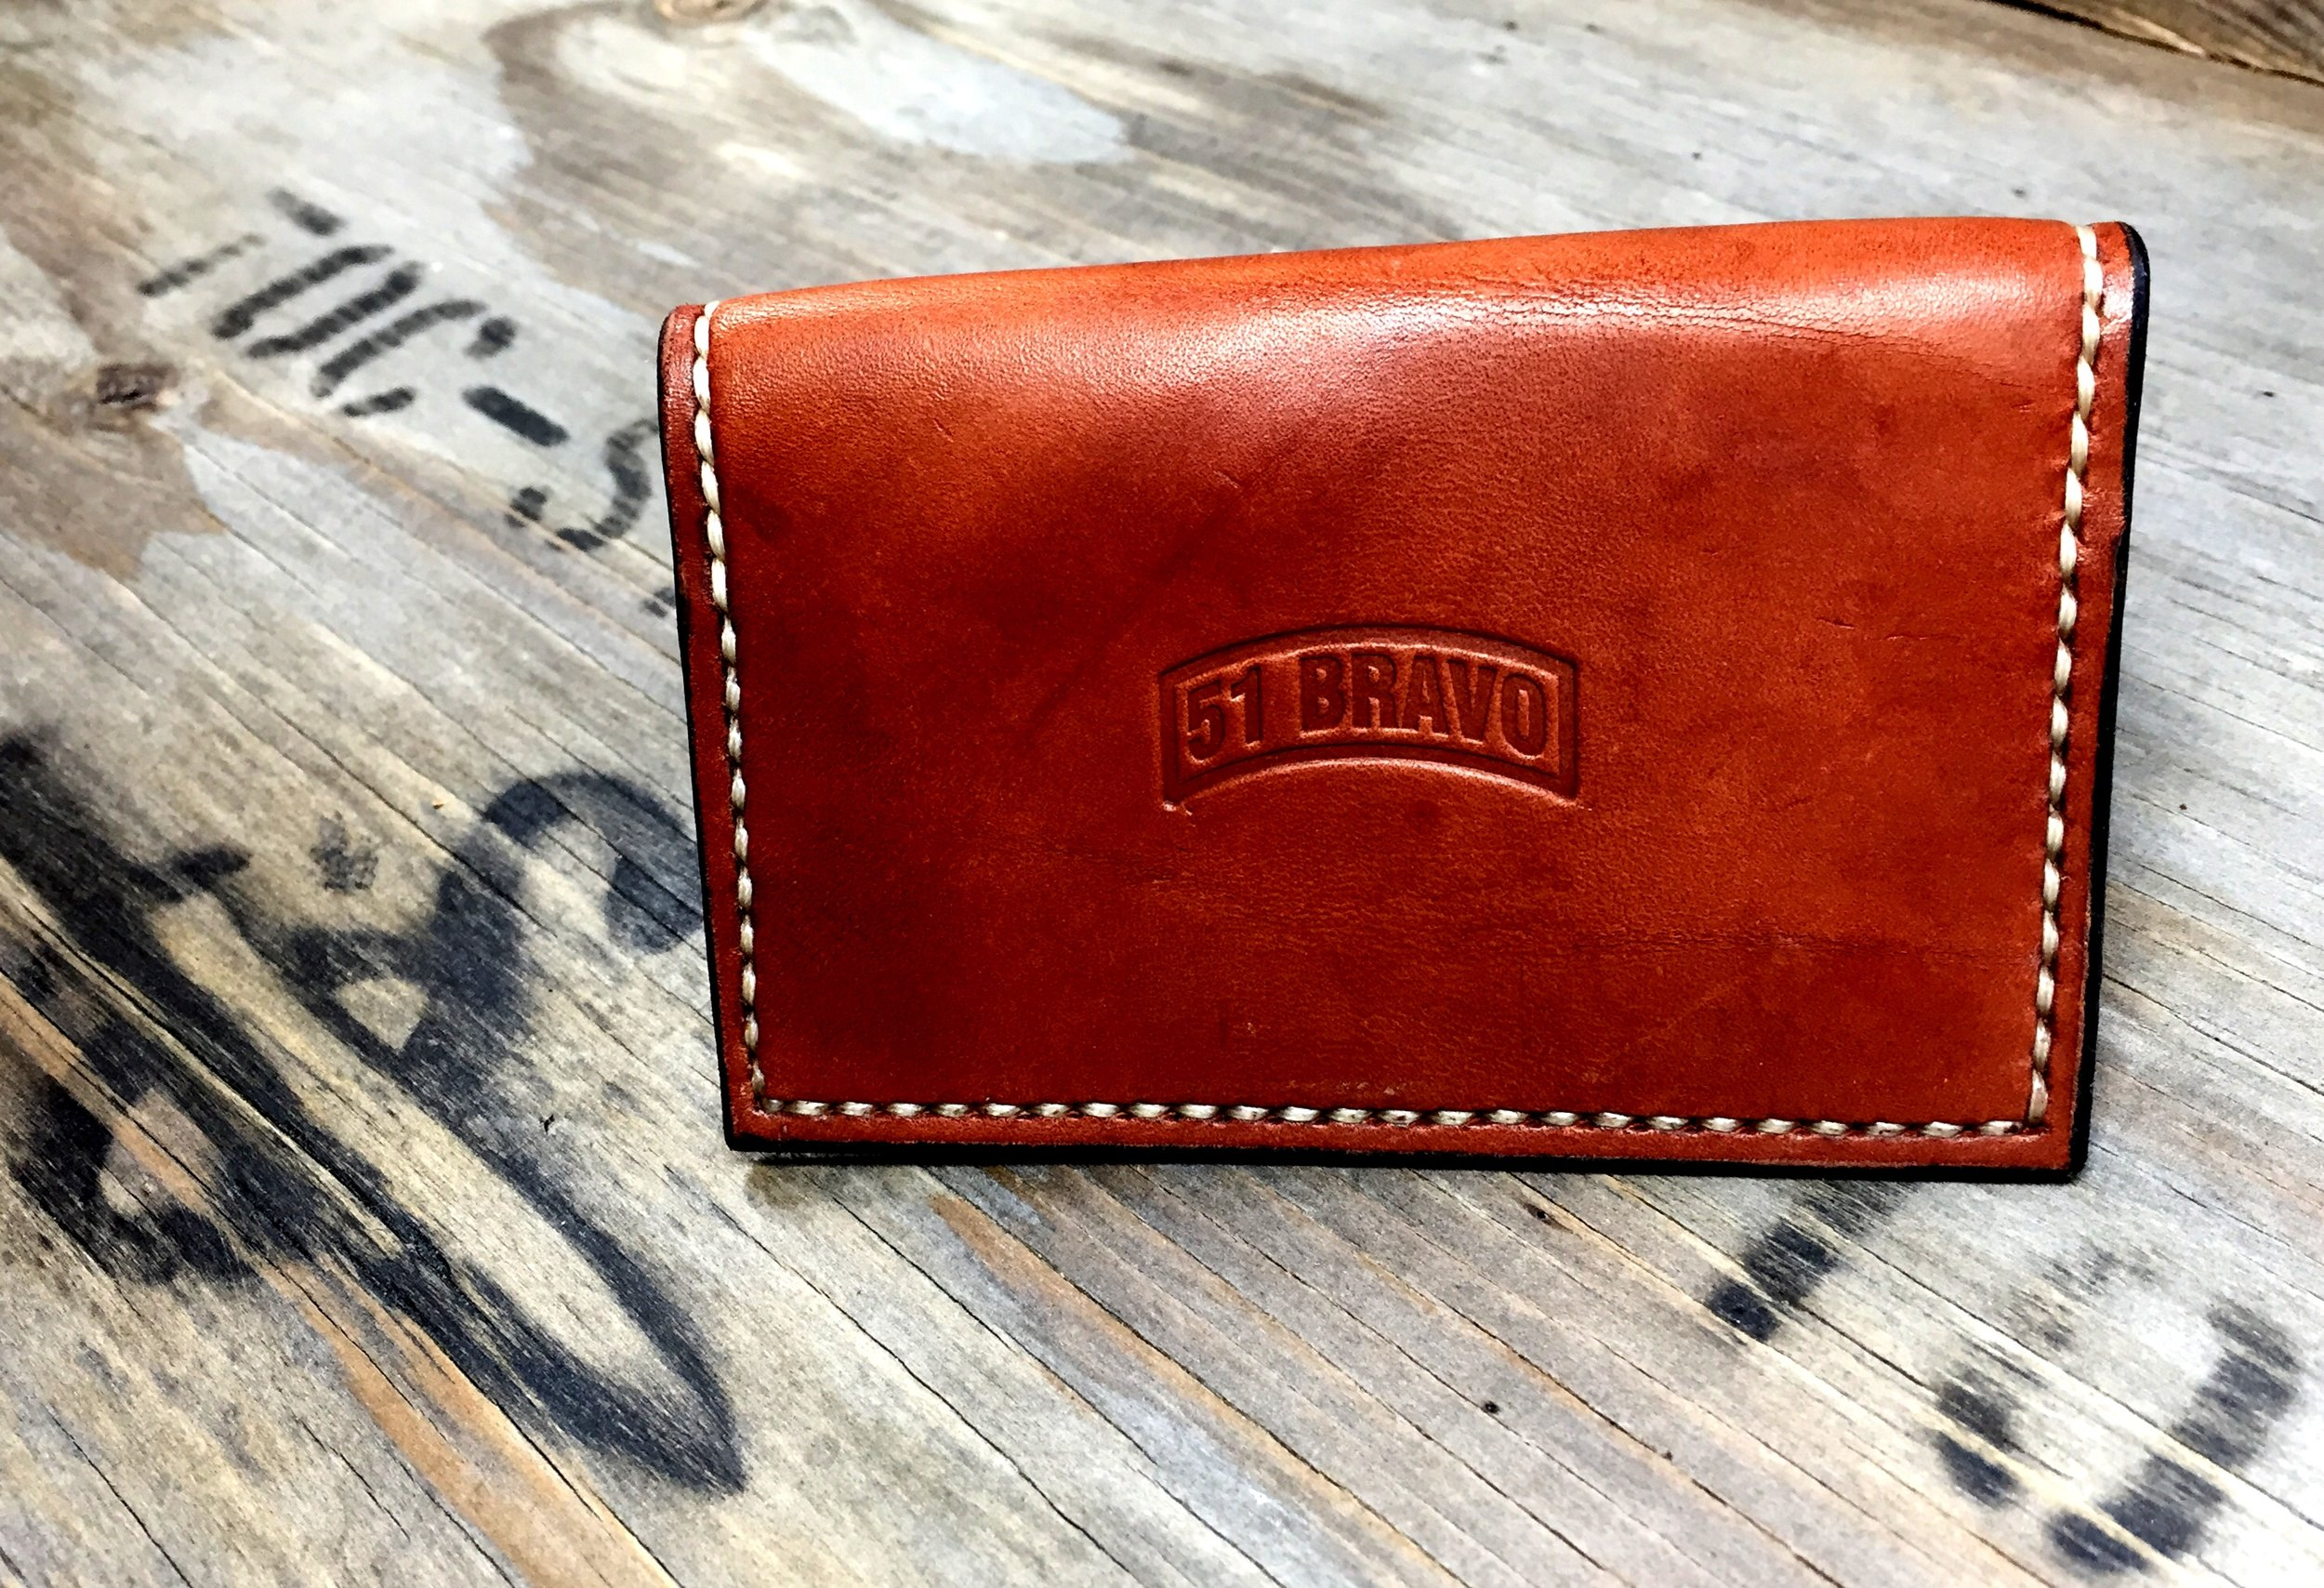 A custom wallet private labeled for a knife company: www.51bravo.com